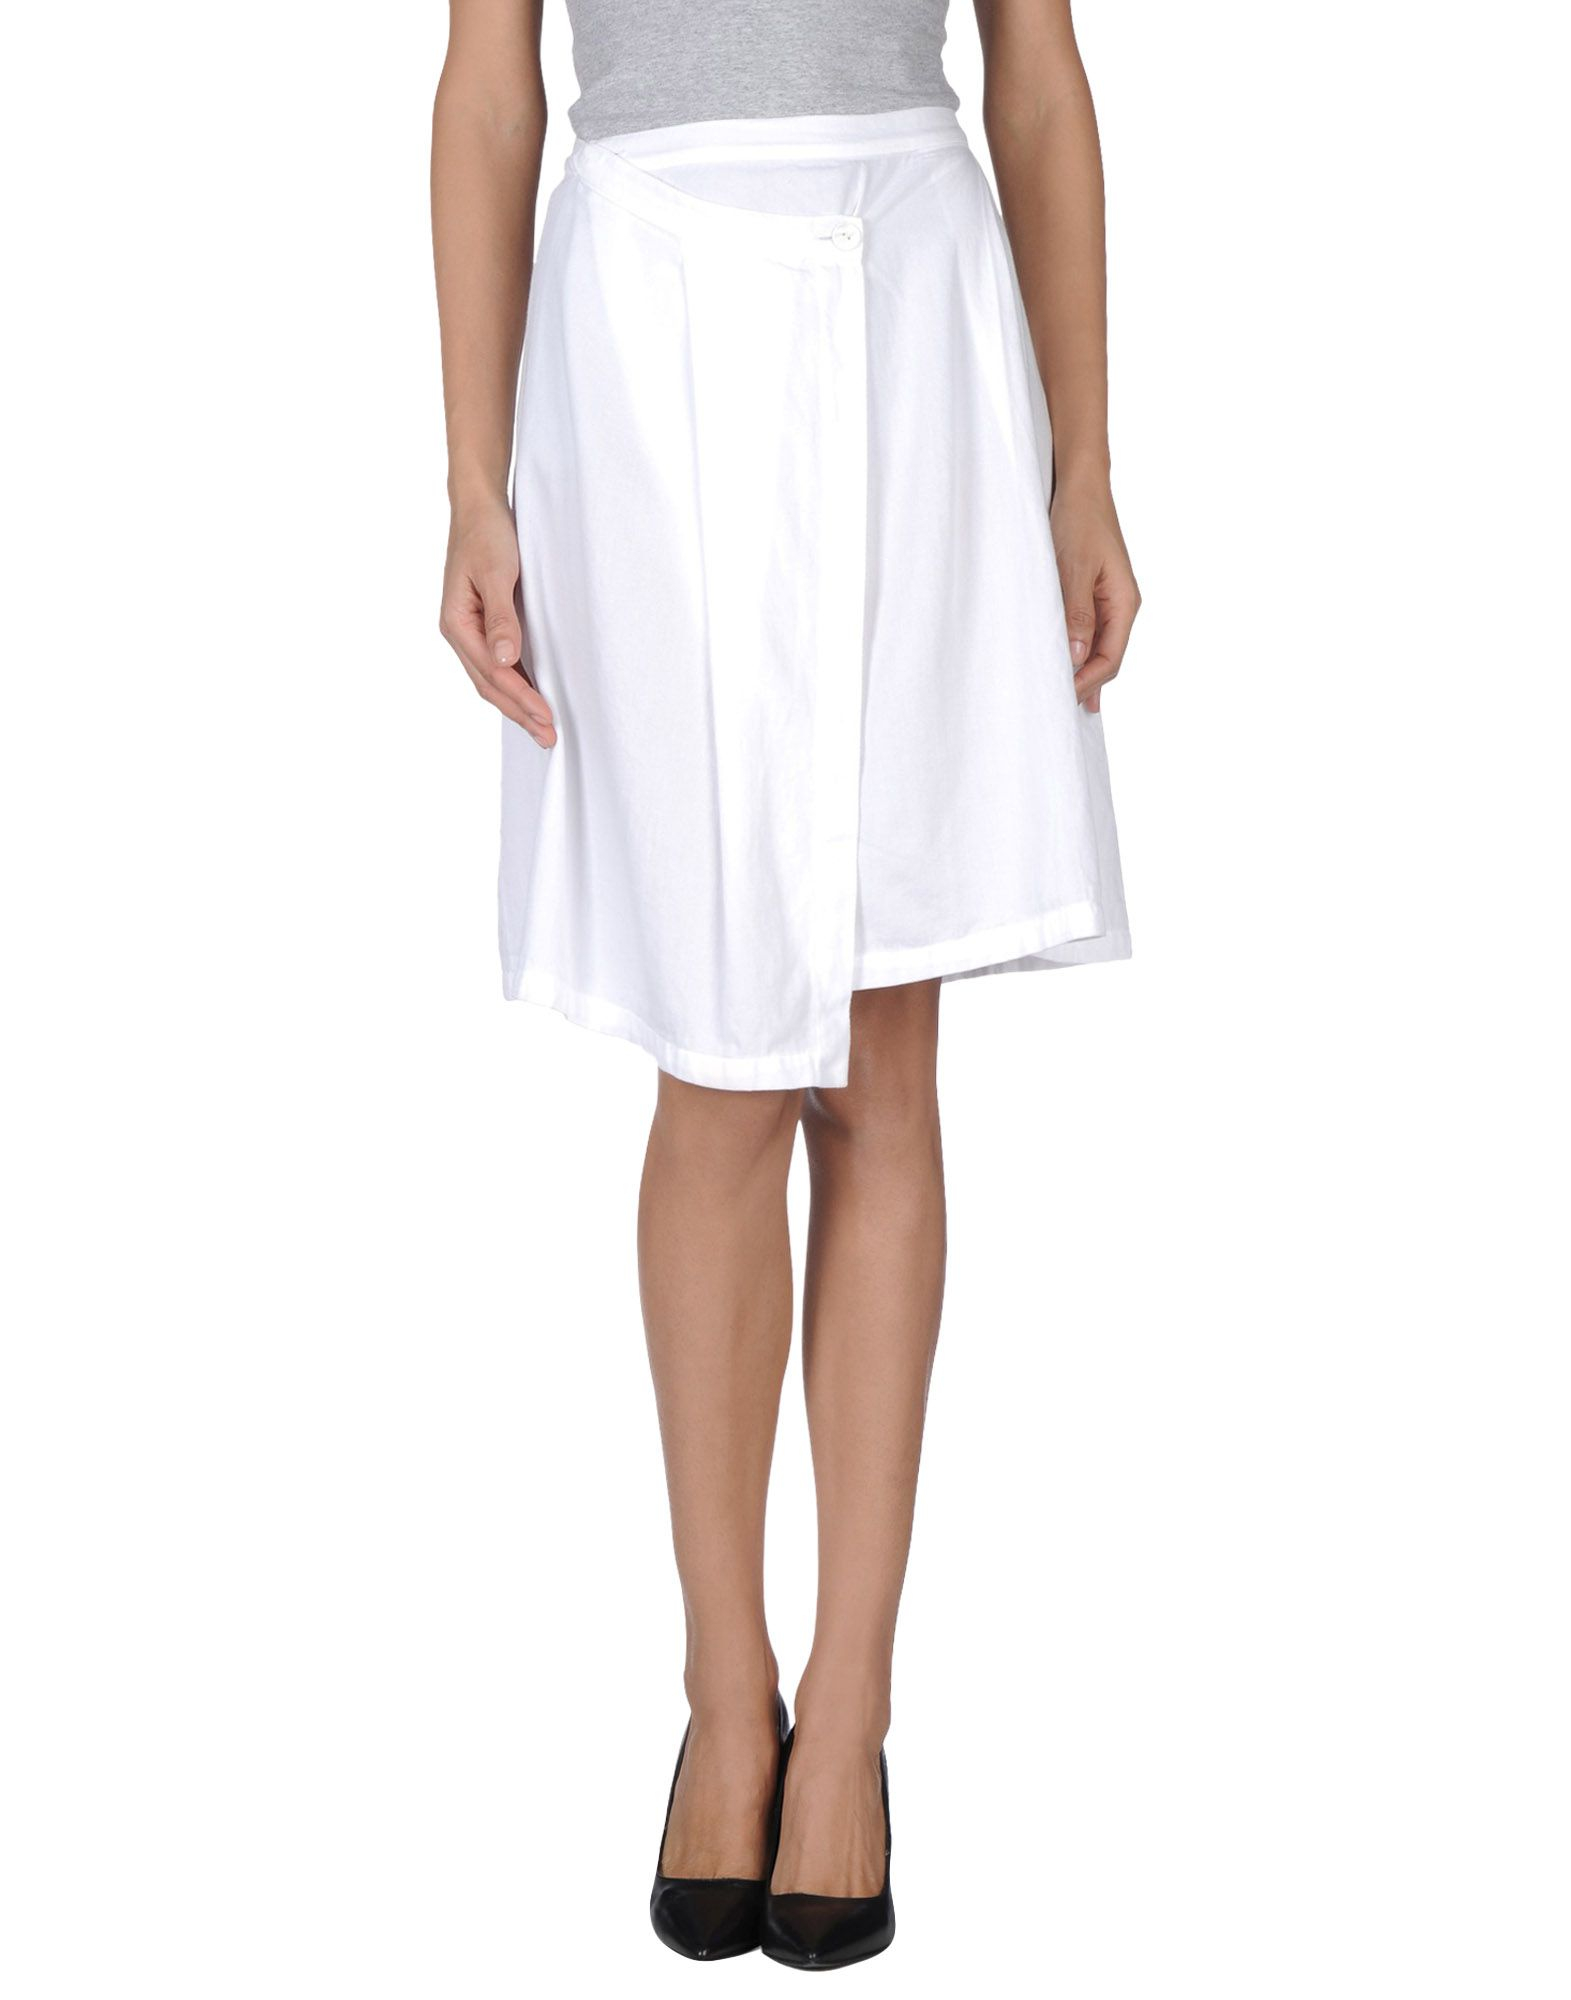 Buy Rust-Blue Knee Length Cotton Skirt - Free Size Online. Extra Long Petite Waist Cotton Off White Skirt with Frills Layers - This is white long cotton skirt with layered frills and machine embroidery ribbons (see pic). Find this Pin and more on Cosas que comprar by Rosana.